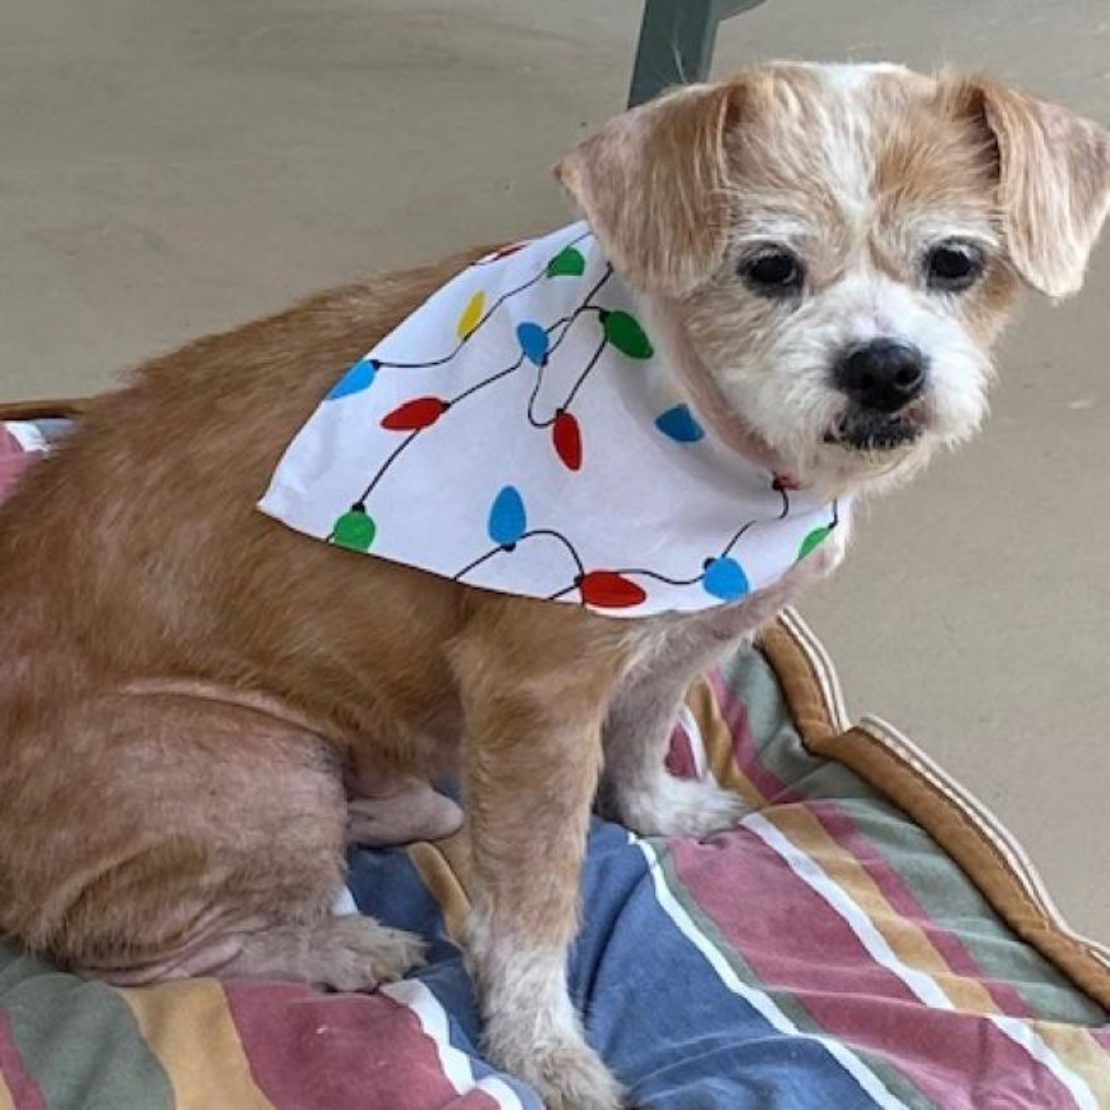 little tan dog with white muzzle and streak on head sits on a striped duvet. He wears a white scarf decorated with red and blue bulbs.